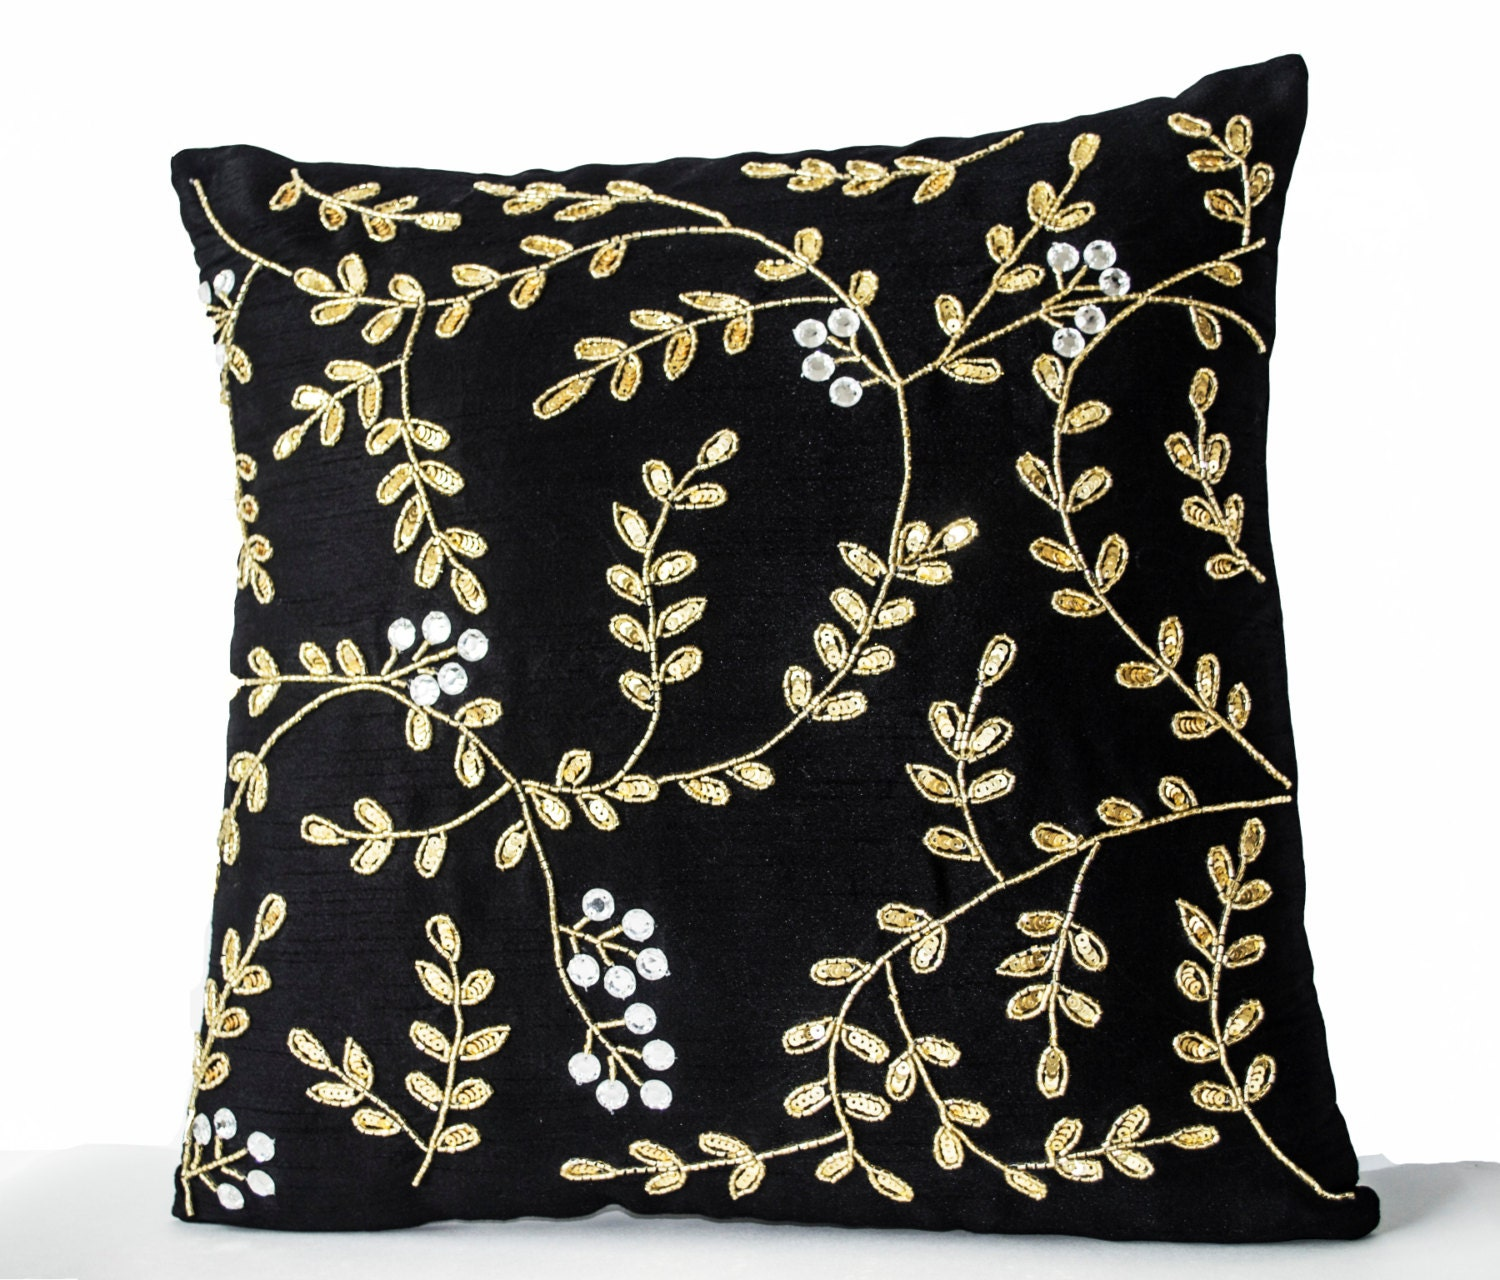 Decorative Pillows Black Gold throw pillows with sequin